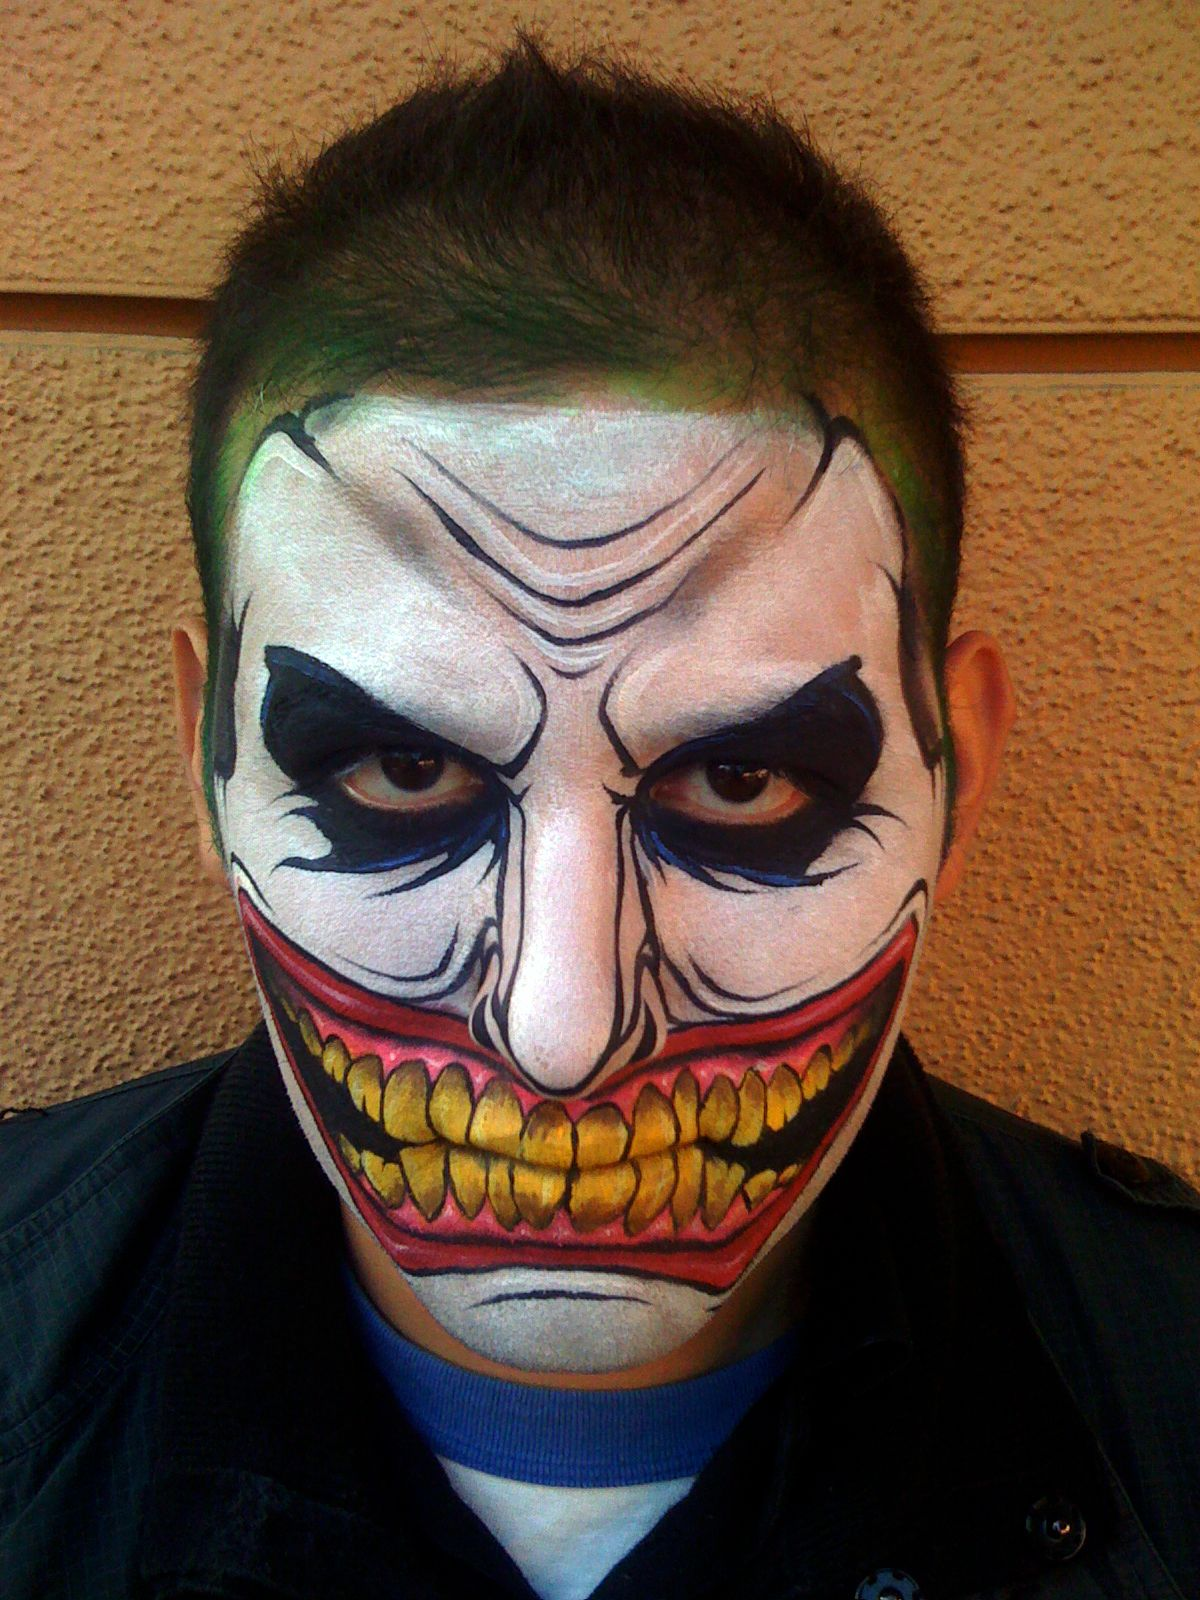 joker face paint | face paint & fantasy makeup | pinterest | joker